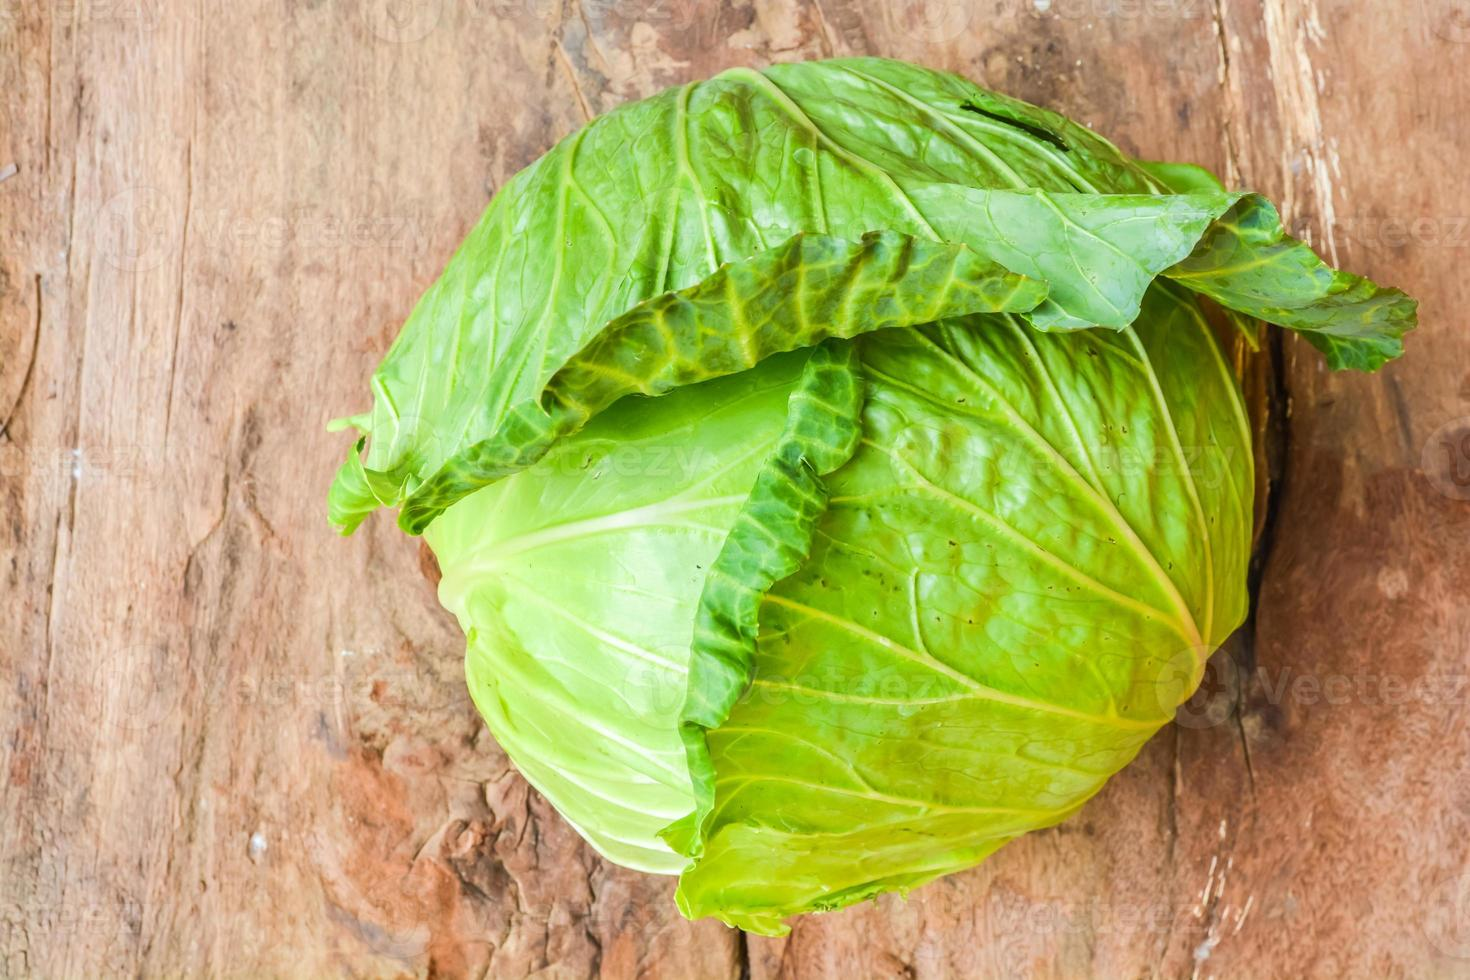 Cabbage vegetable photo